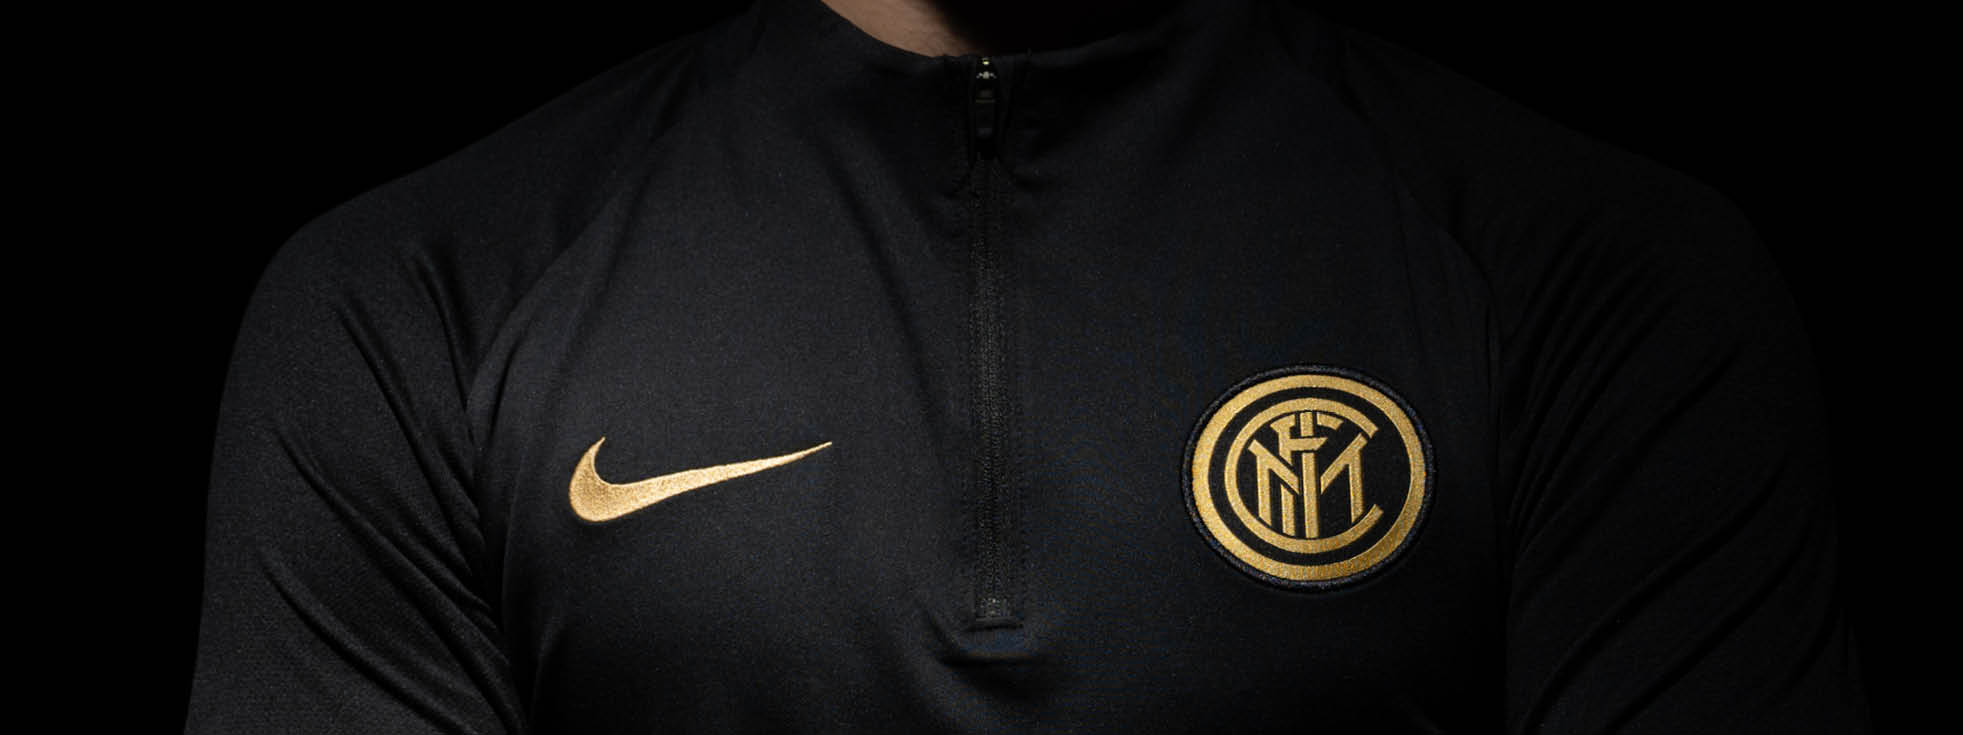 INTER MILAN TRAINING TOP 2019-2020